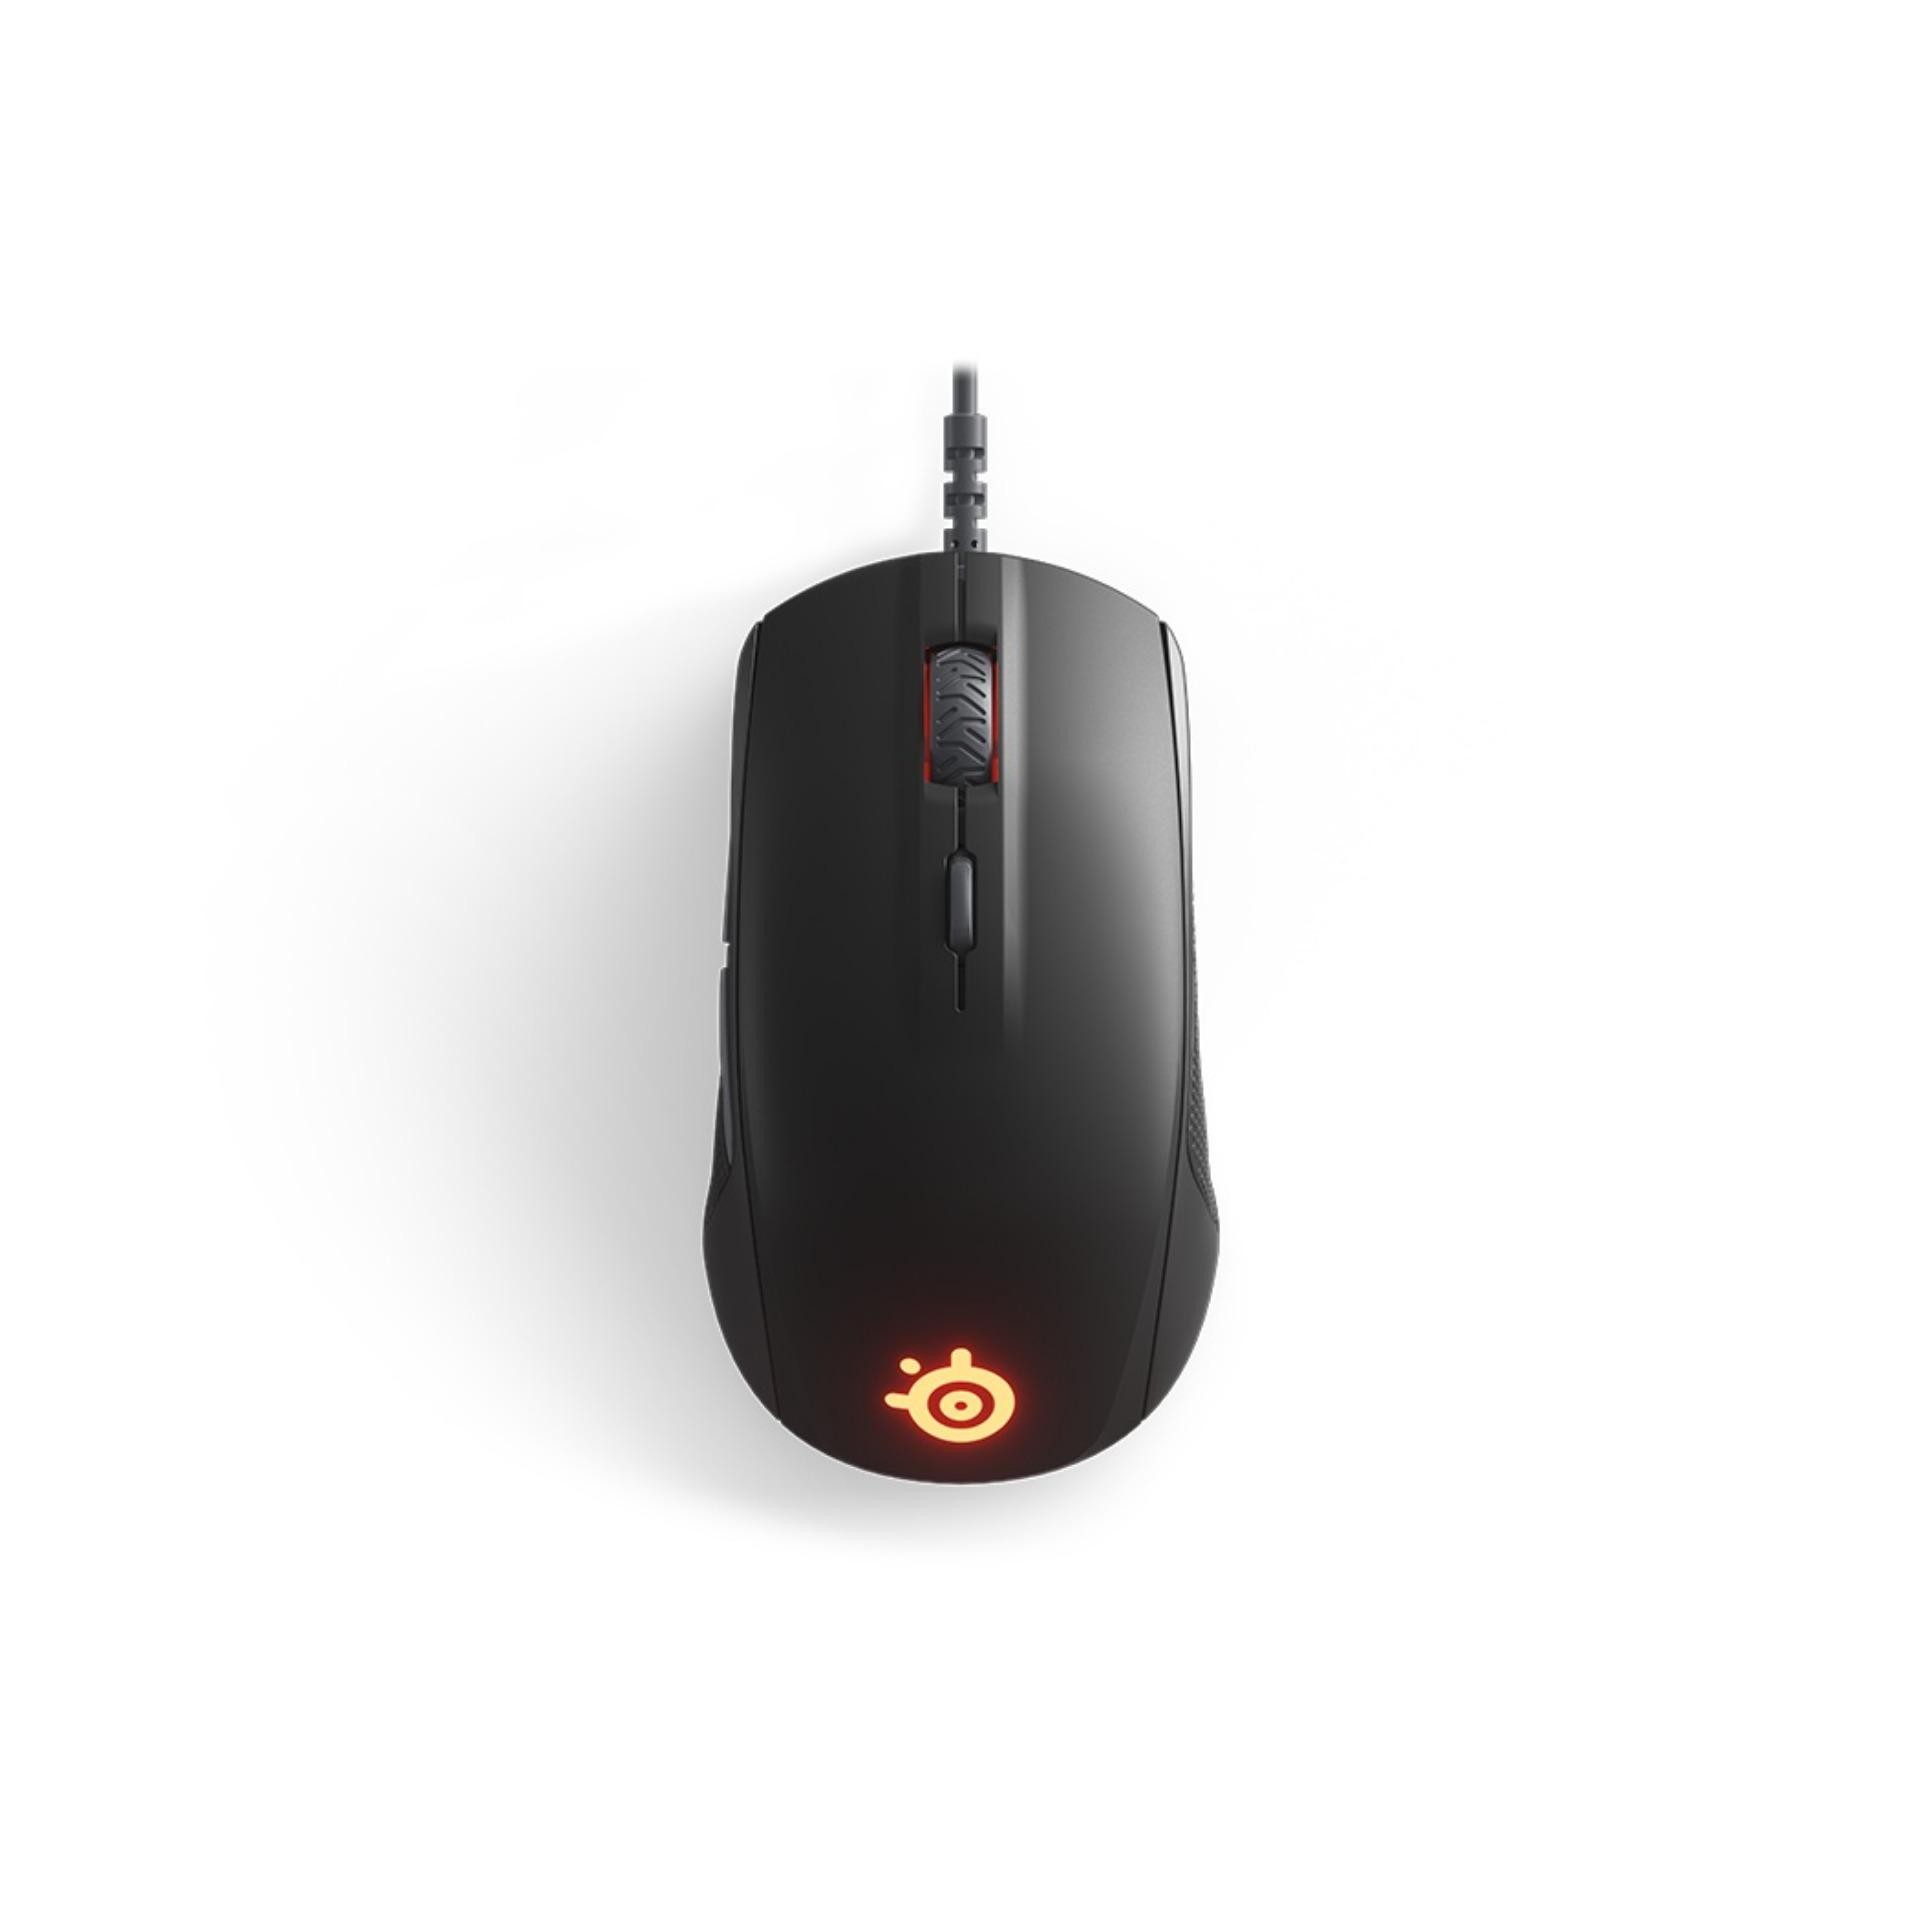 Logitech M170 Wireless Mouse Hitam Gratis Gantungan Laser Daftar Ori M331 Silent Plus Source Steelseries Rival